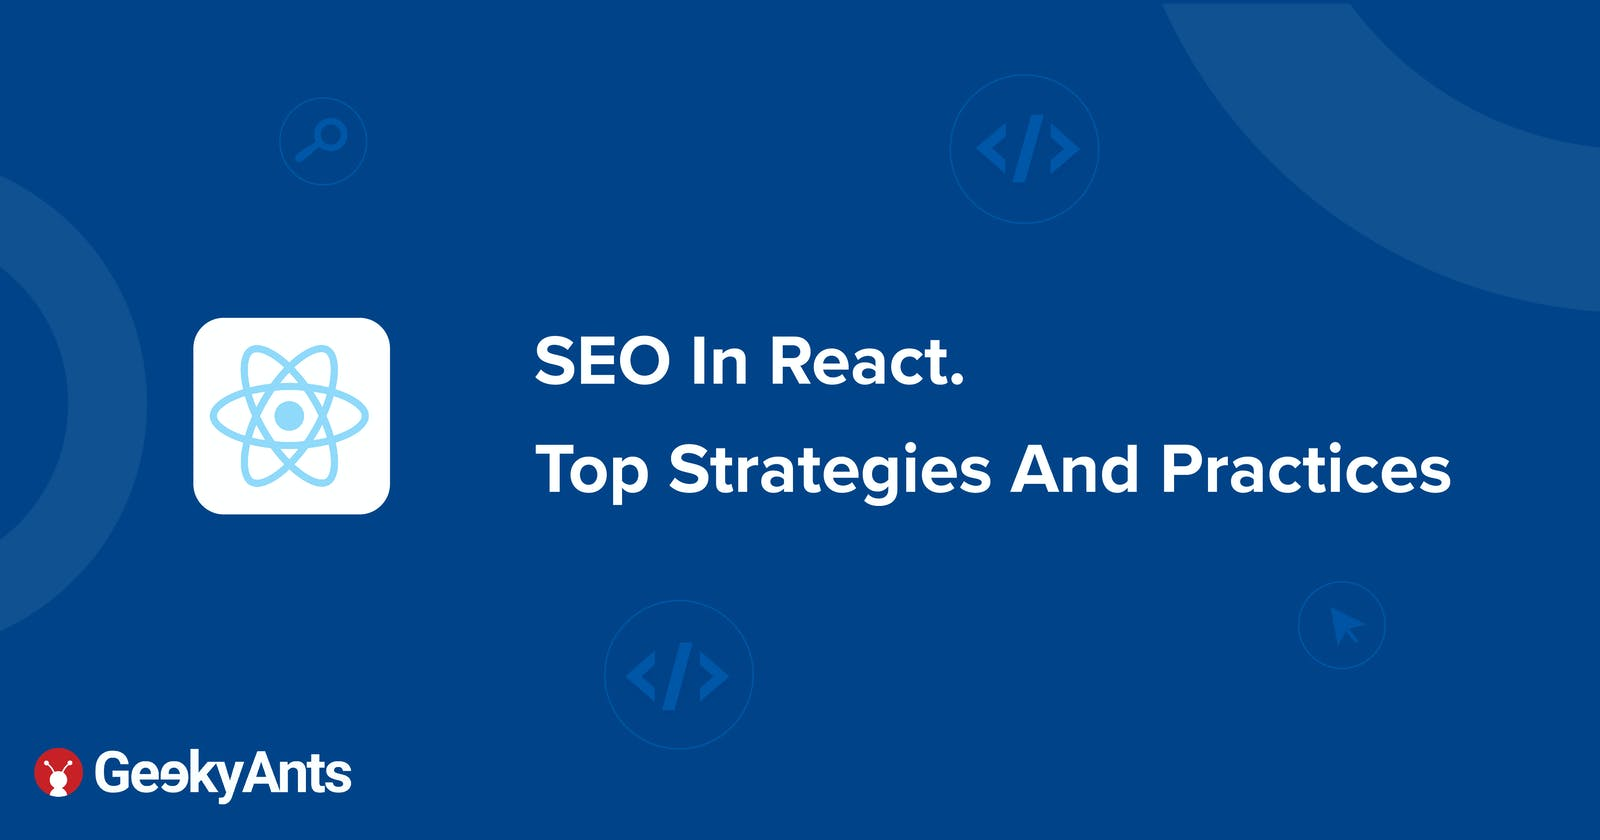 SEO In React. Top Strategies And Practices